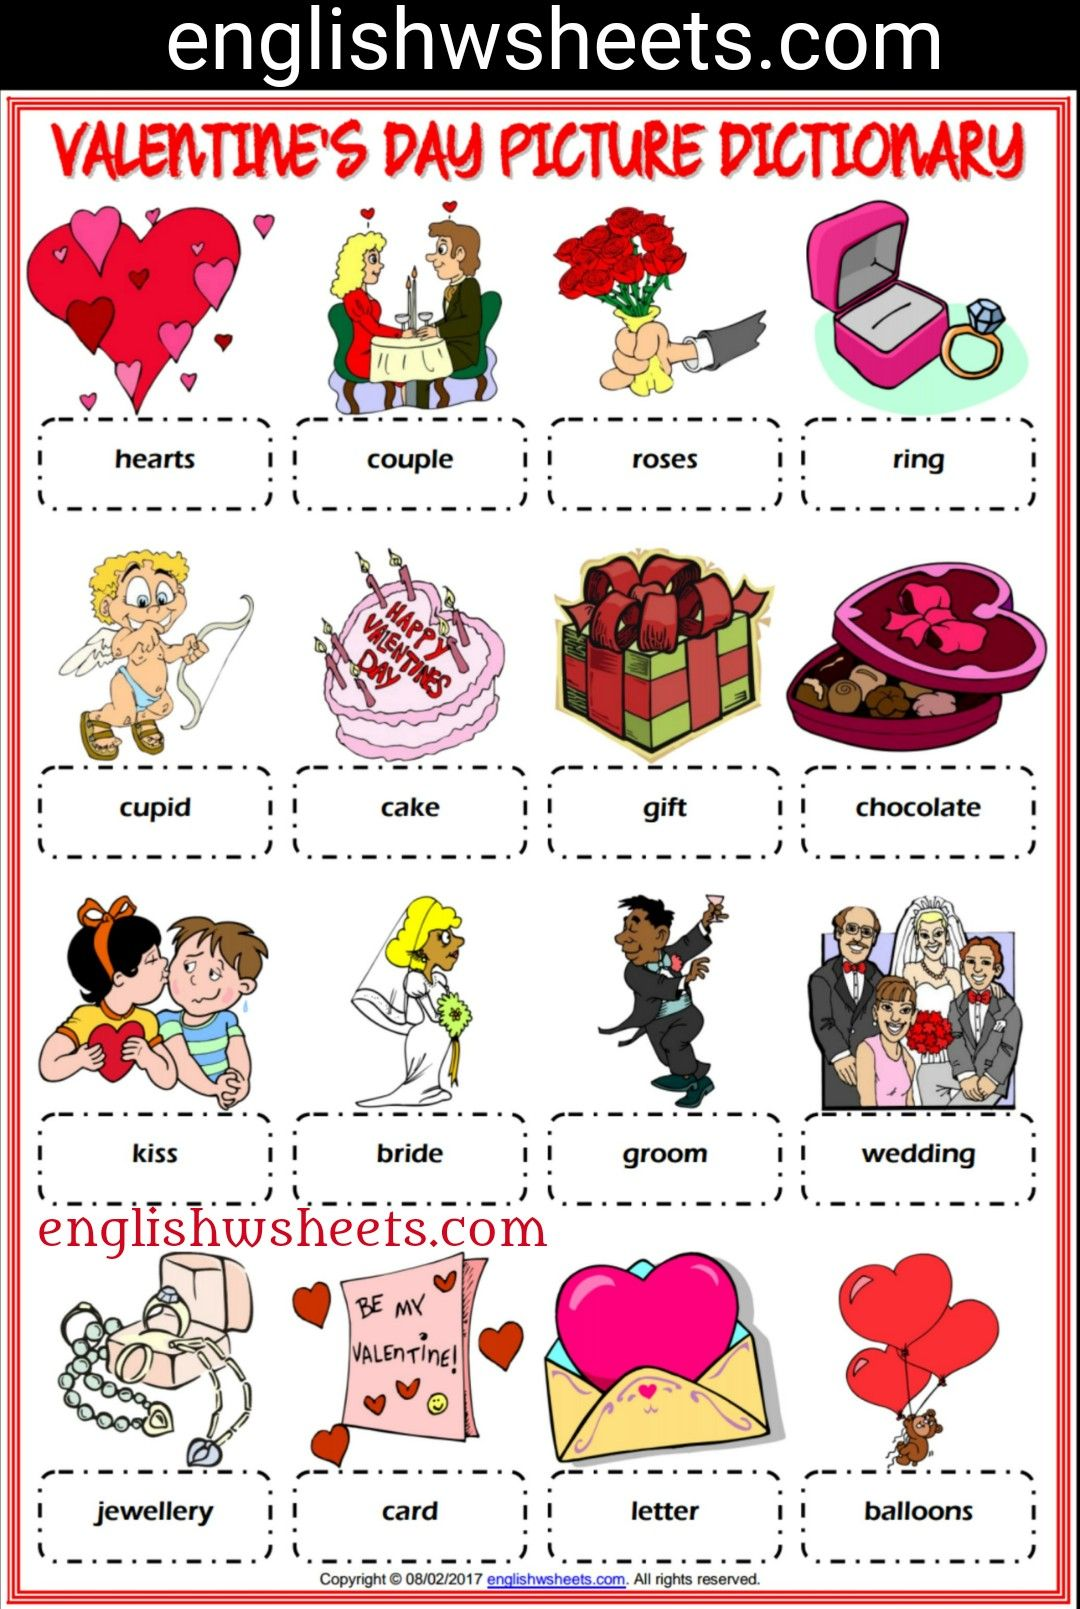 Valentines day esl printable picture dictionary for kids activities fandeluxe Choice Image